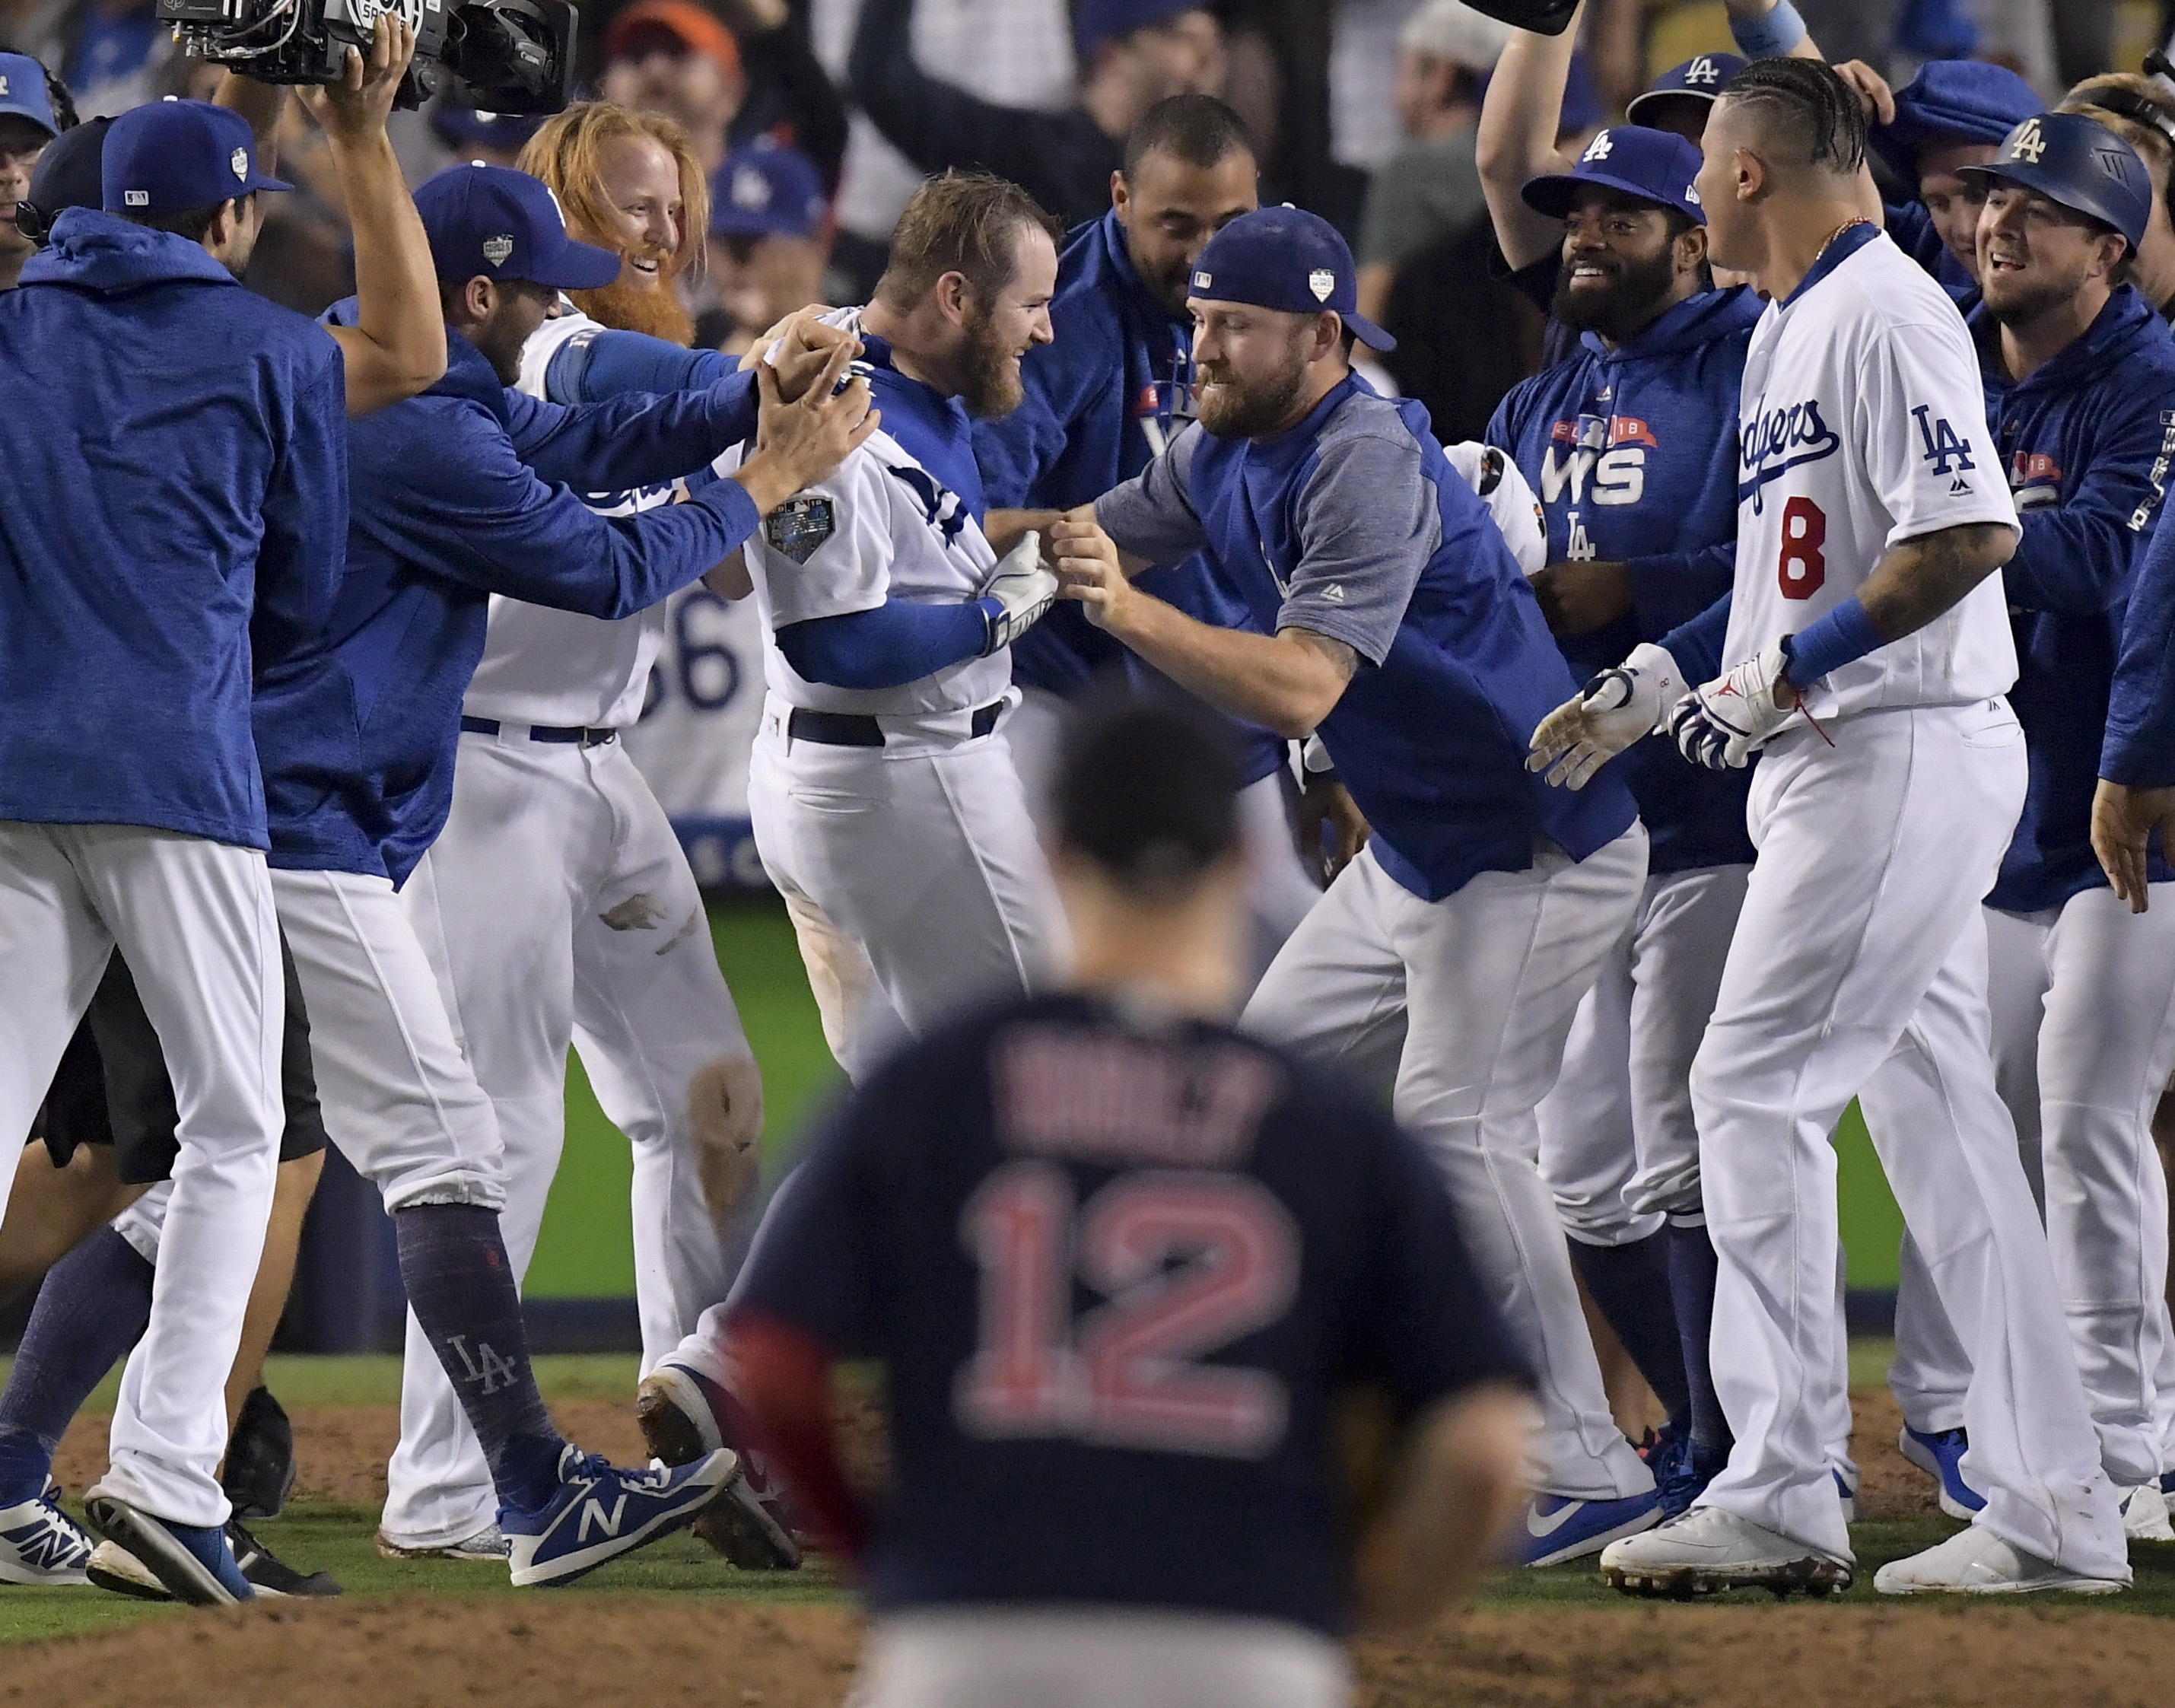 In longest World Series game, Dodgers outlast Red Sox in 18